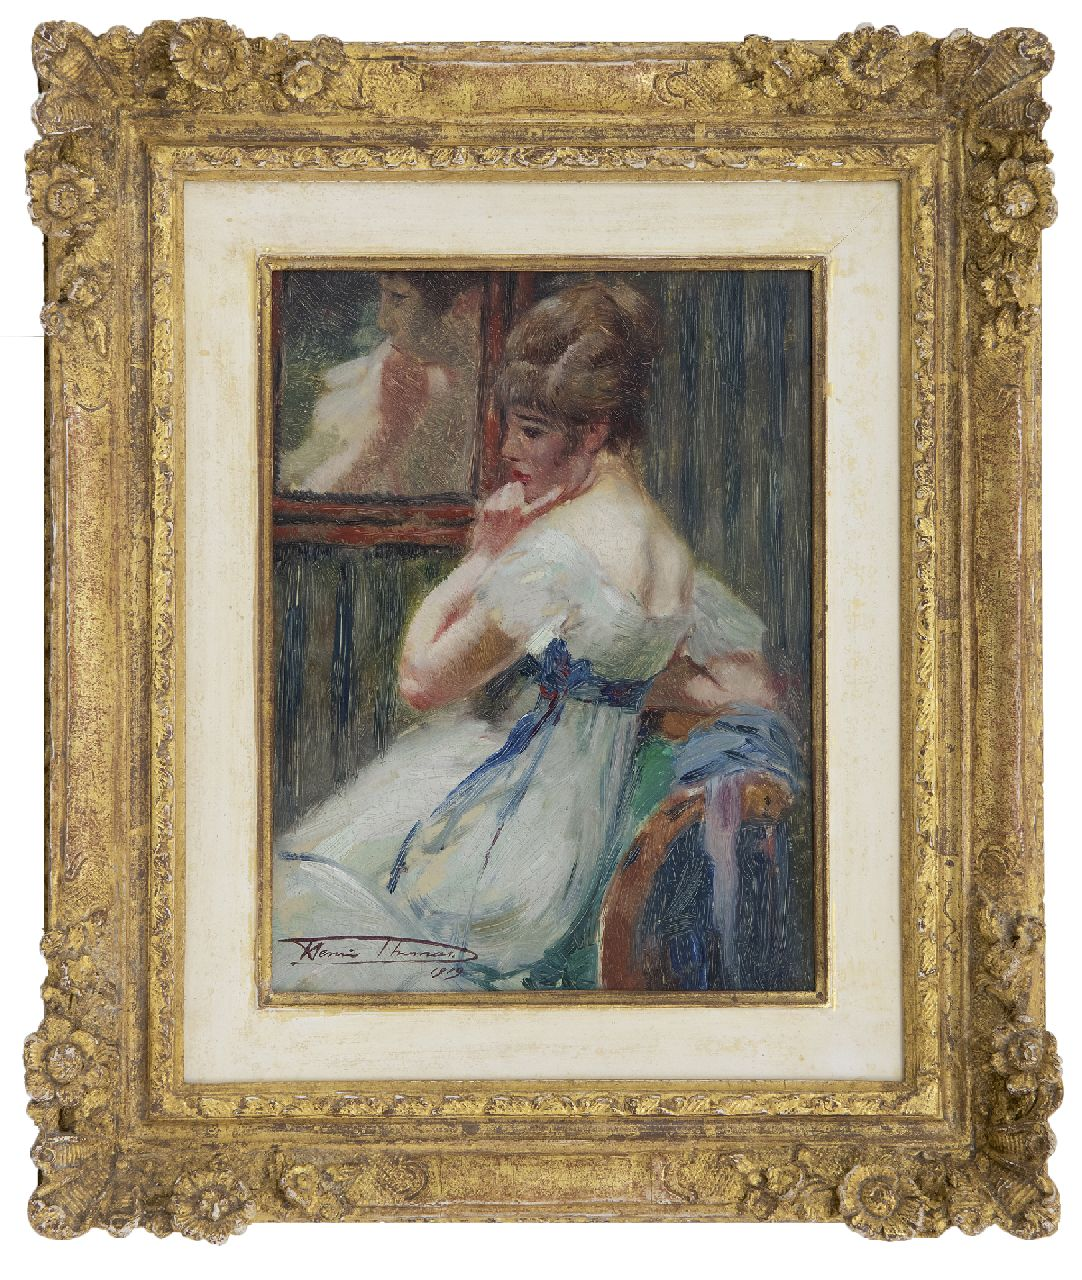 Thomas H.J.  | Henri Joseph Thomas | Paintings offered for sale | In a pensive mood, oil on panel 22.7 x 17.2 cm, signed l.l. and painted 1919